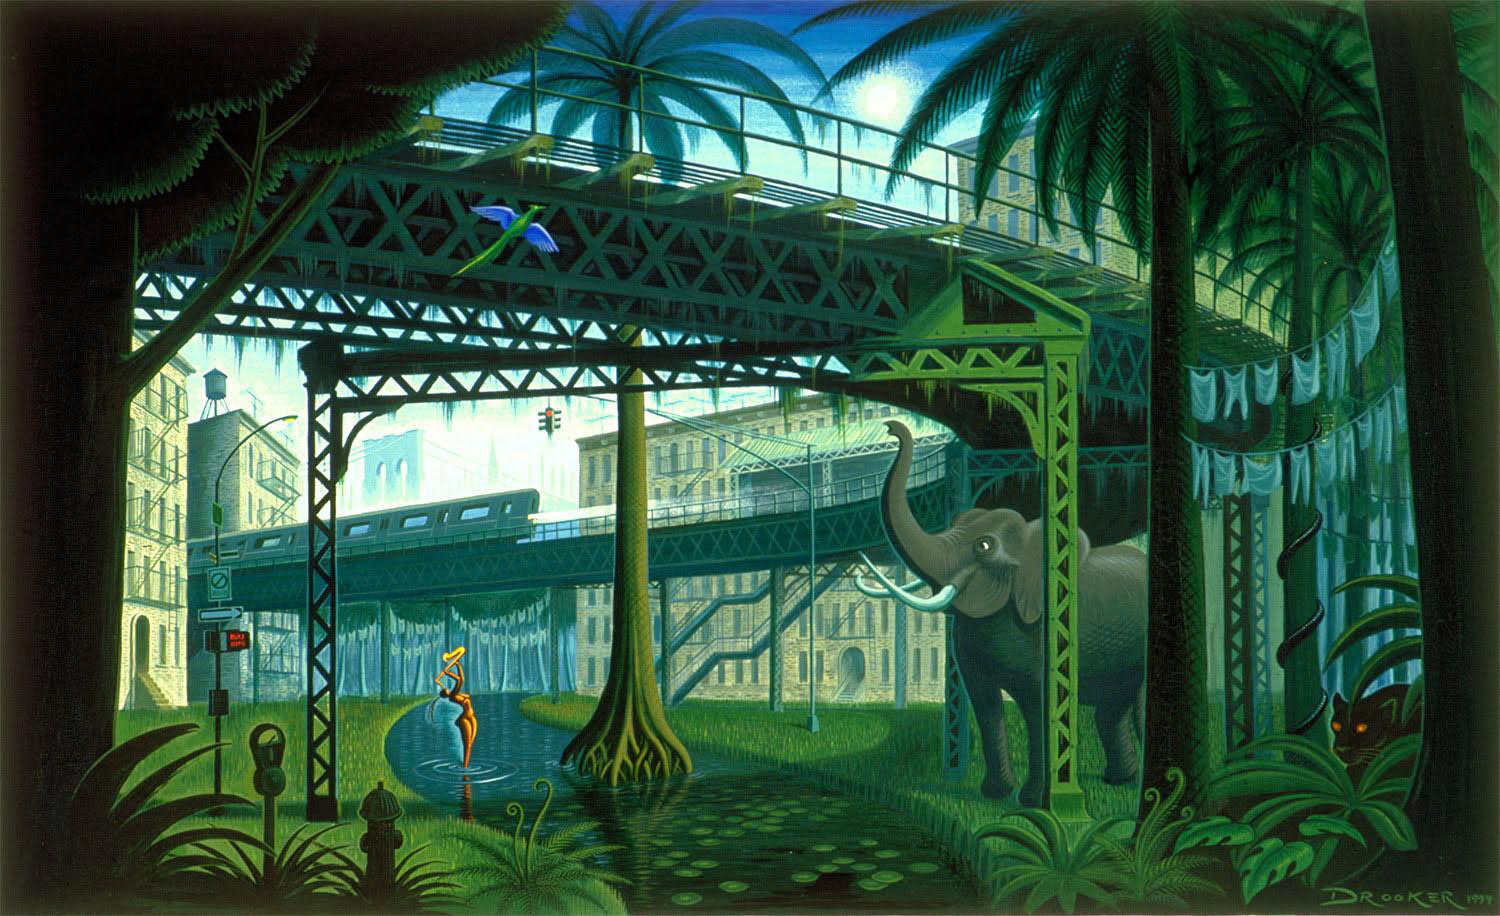 An illustration of a Brooklyn street merged with a jungle. an elephant stands beneath a raised subway line while a woman bathes in a river